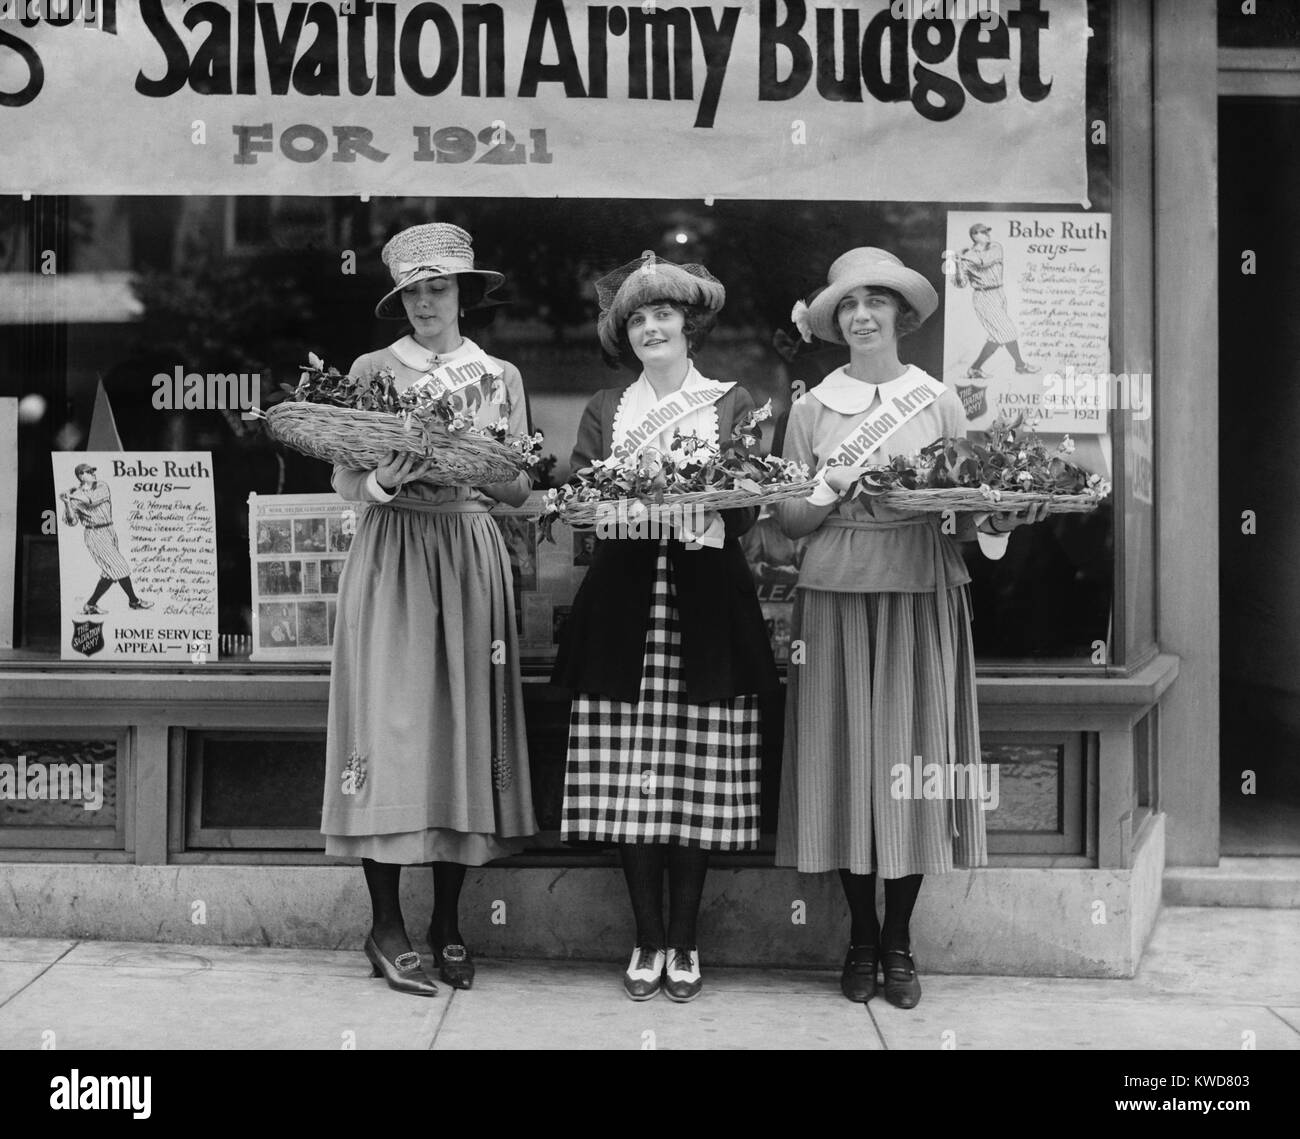 Young Women volunteers called the Salvation Army House Girls, 1921. Washington, D.C. (BSLOC_2015_16_230) - Stock Image